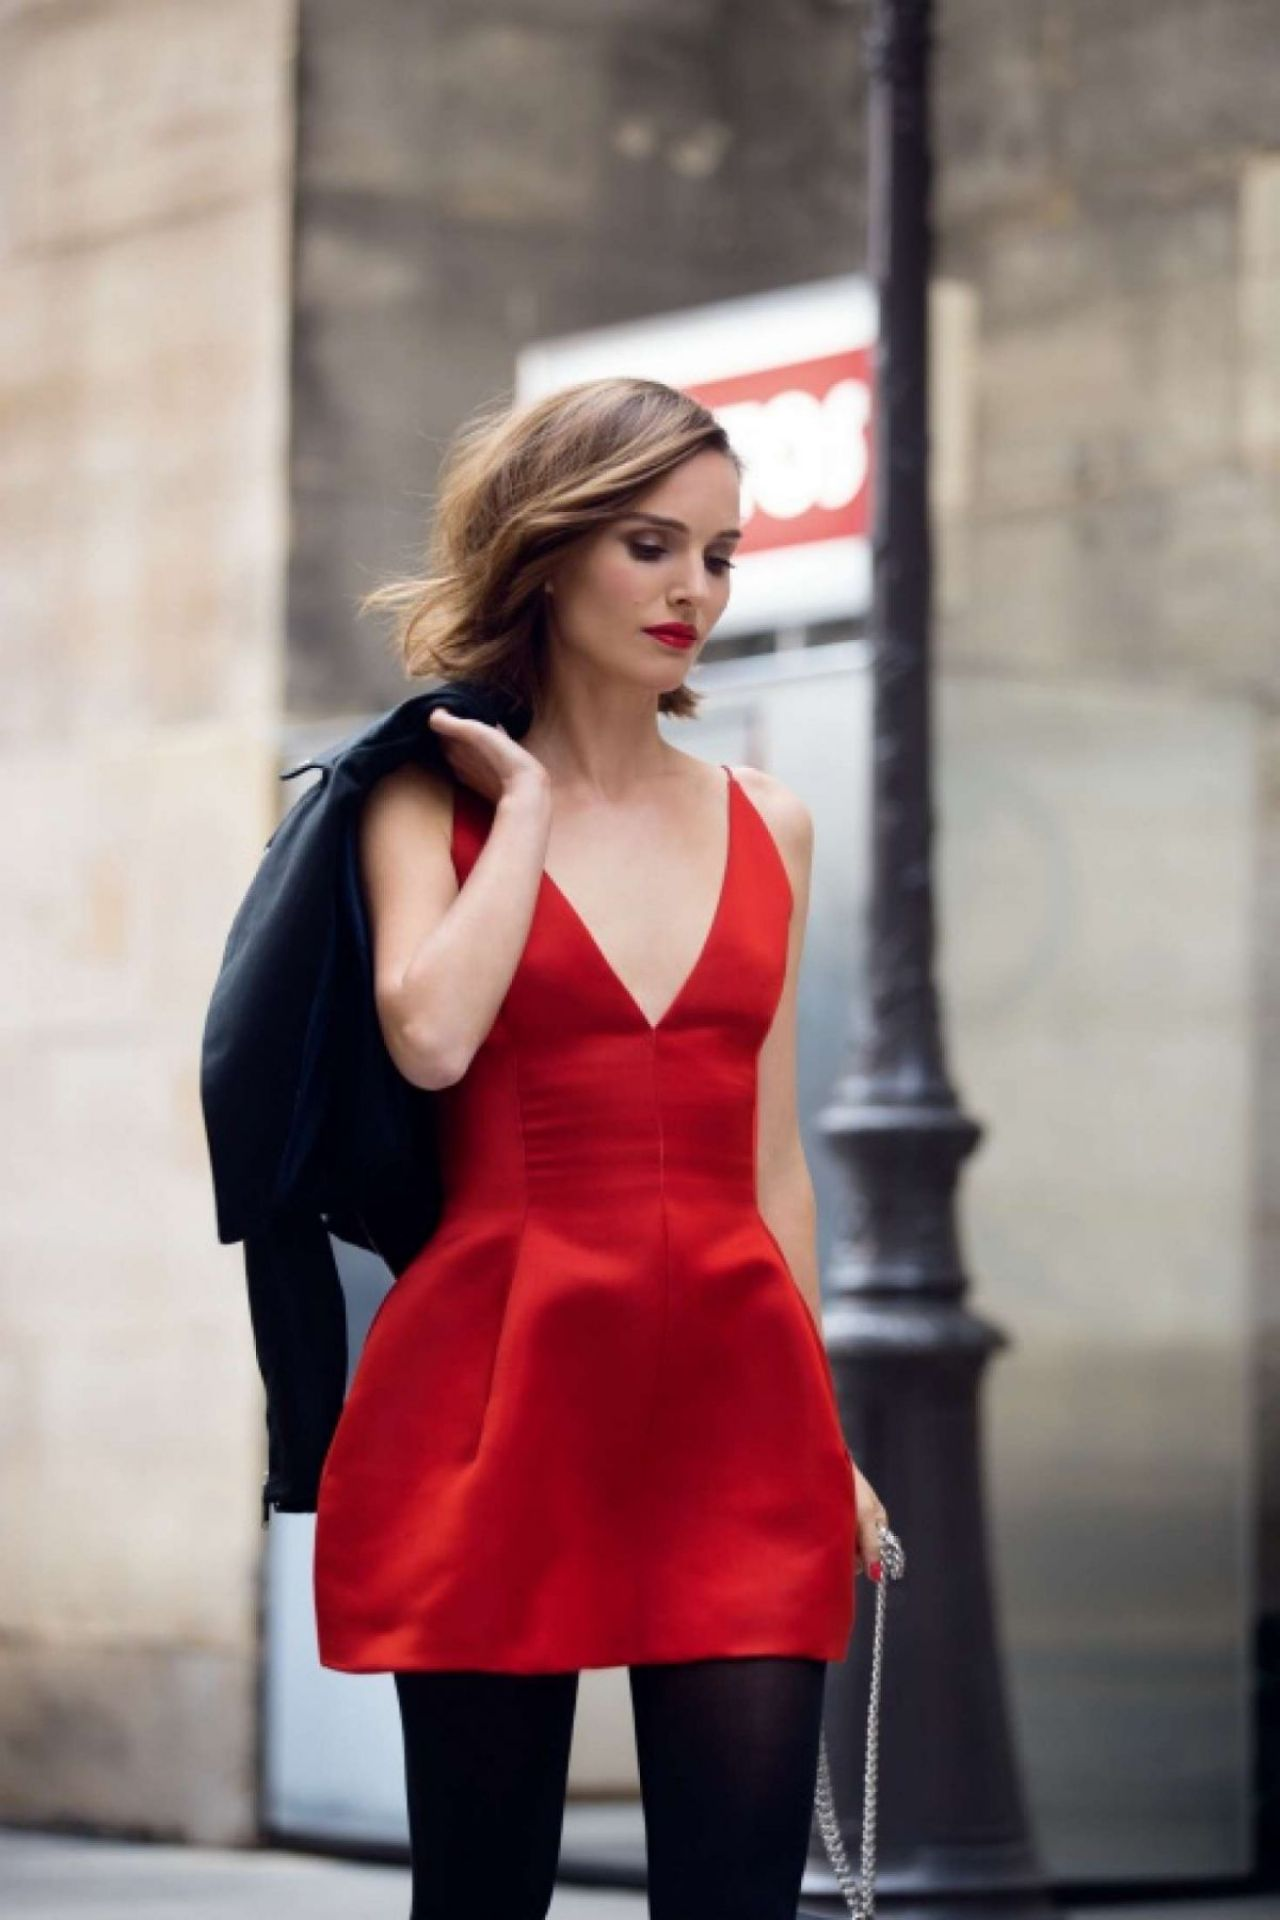 Natalie Portman – Miss Dior Photoshoot – Absolutely Blooming 2016 ... Natalie Portman